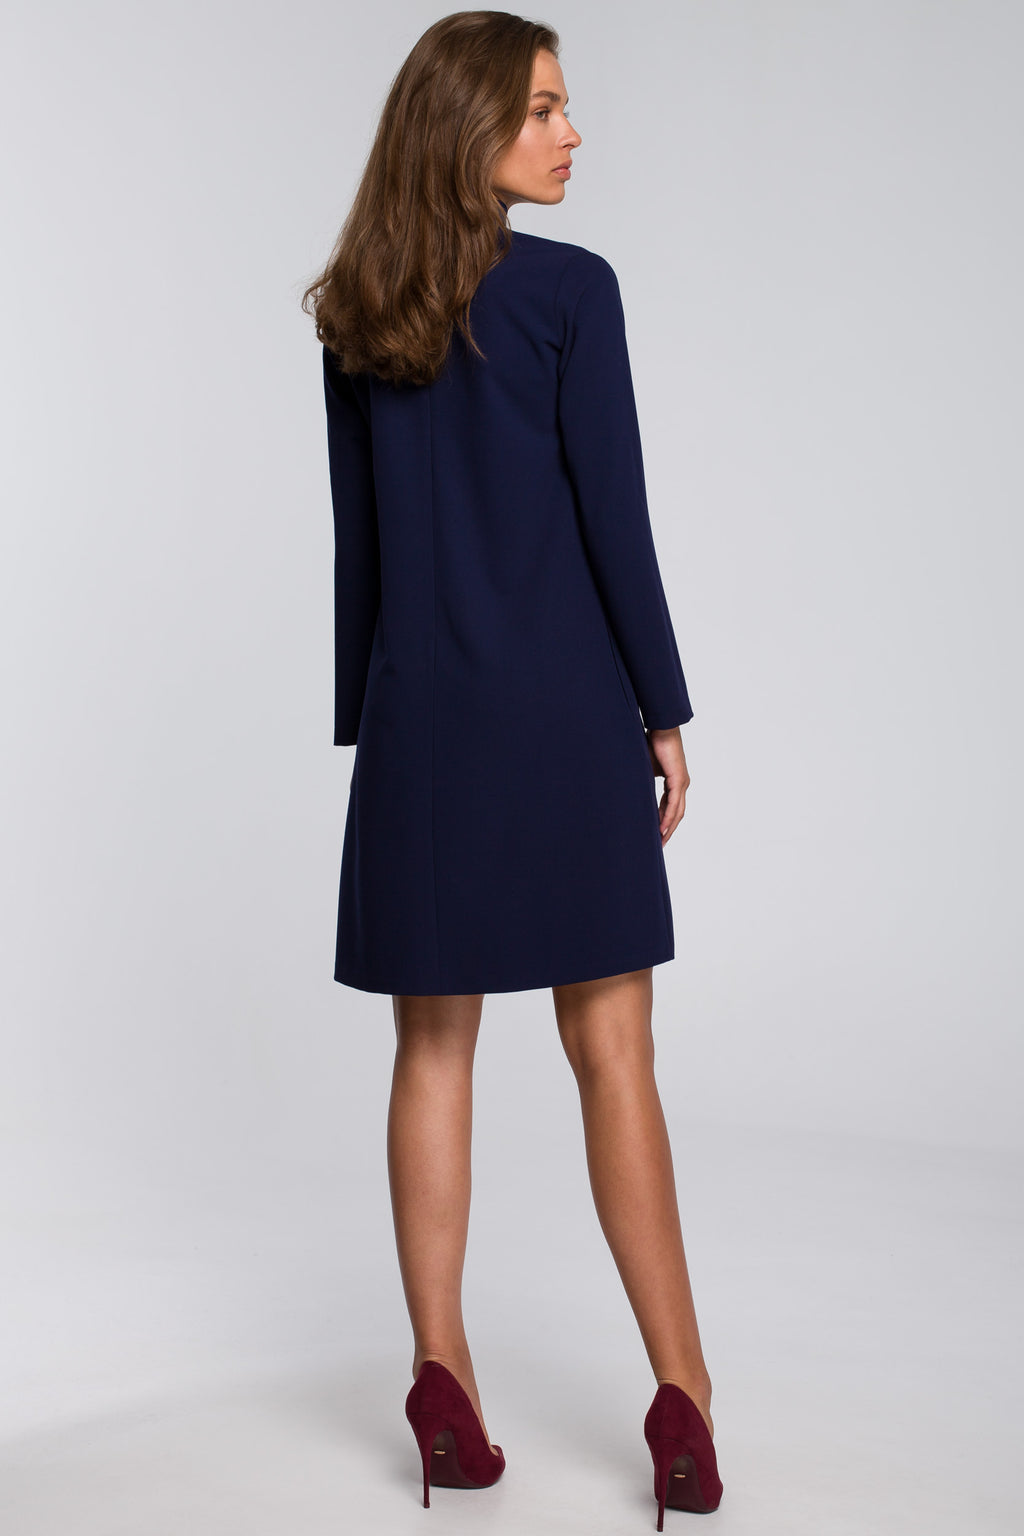 Navy Blue Shift Dress With Chiffon Scarf - So Chic Boutique